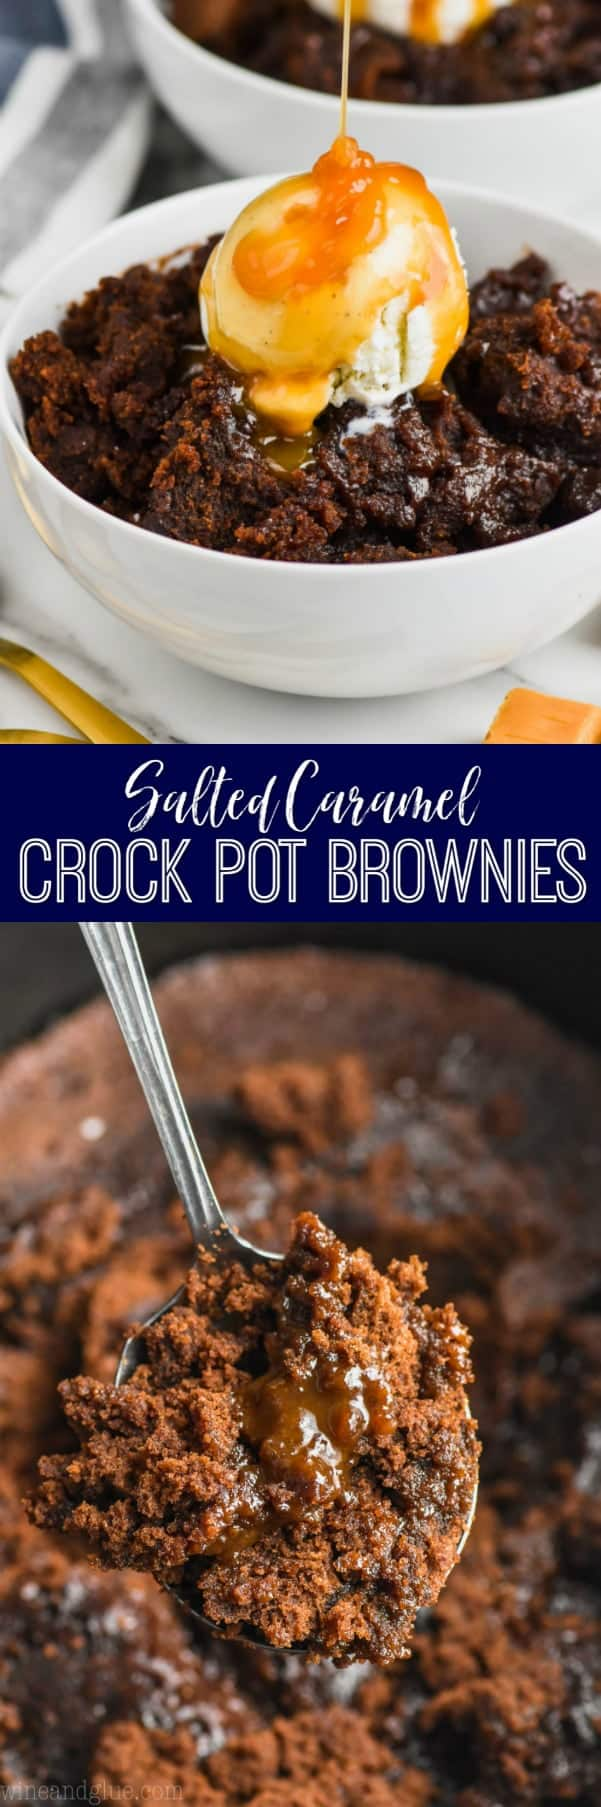 collage of photos of crock pot brownies